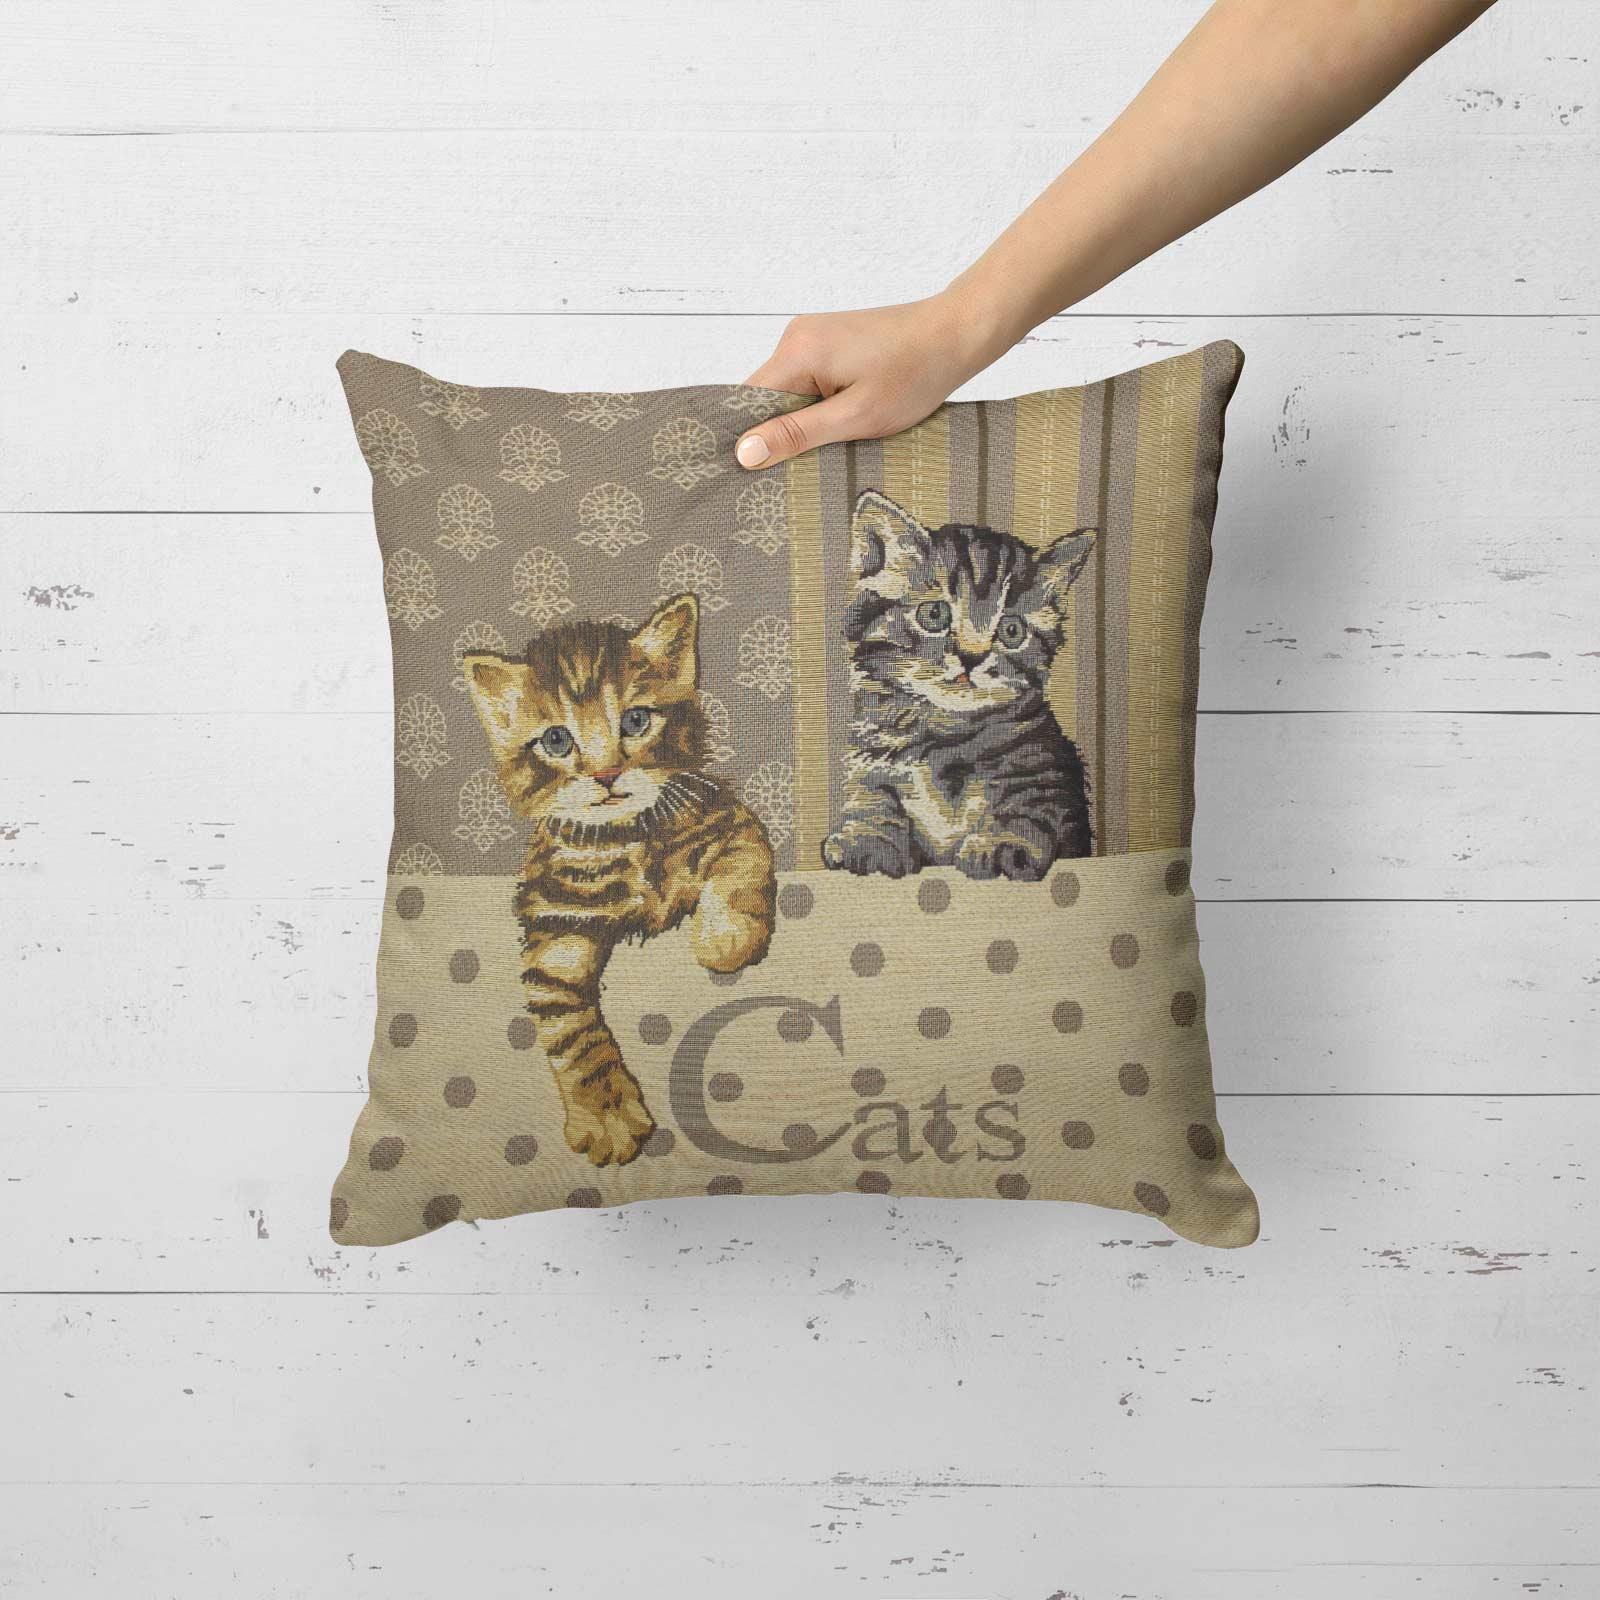 Tapestry-Cushion-Covers-Vintage-Pillow-Cover-Collection-18-034-45cm-Filled-Cushions thumbnail 20